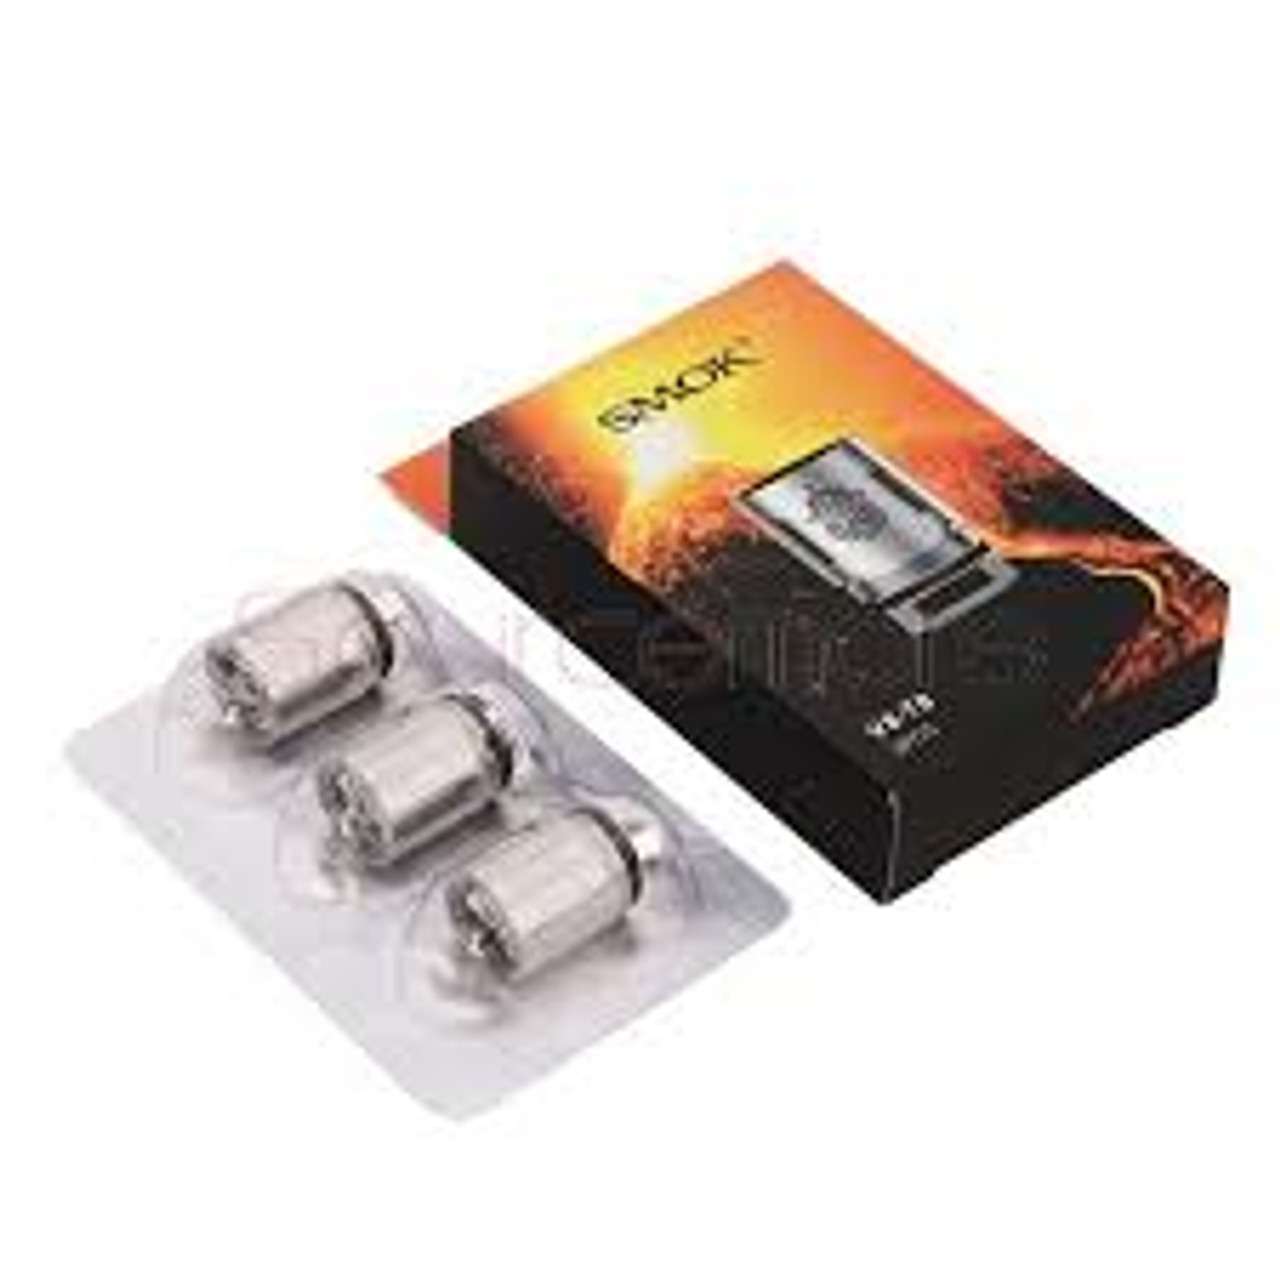 SMOK TFV8 V8-T8 Coils 3 Pack [0.15ohm]     Replacement coils for the TF-V8 Cloud Beast, bring a deep and rich cloud taste.     Features:  Turbo: 6.6T Patented Octuple Coil 0.15Ohm (50-260W / BEST 120-180W)